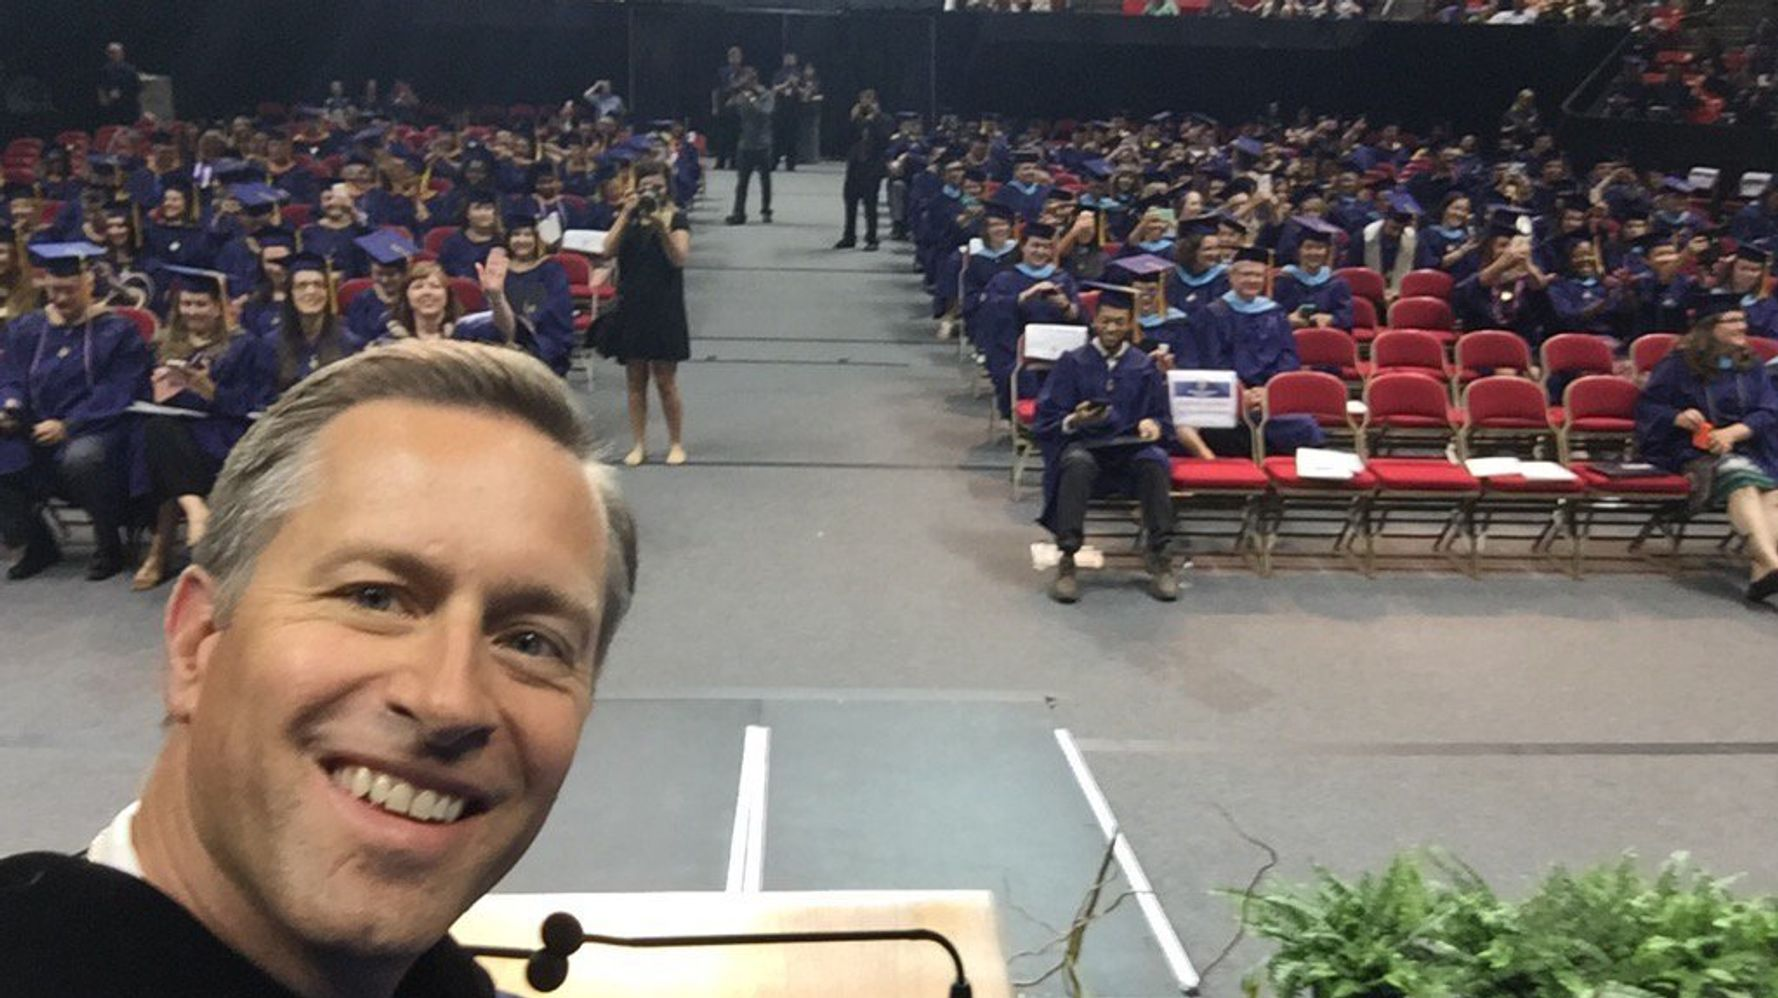 WGU President: Higher Education is About Quality and Value